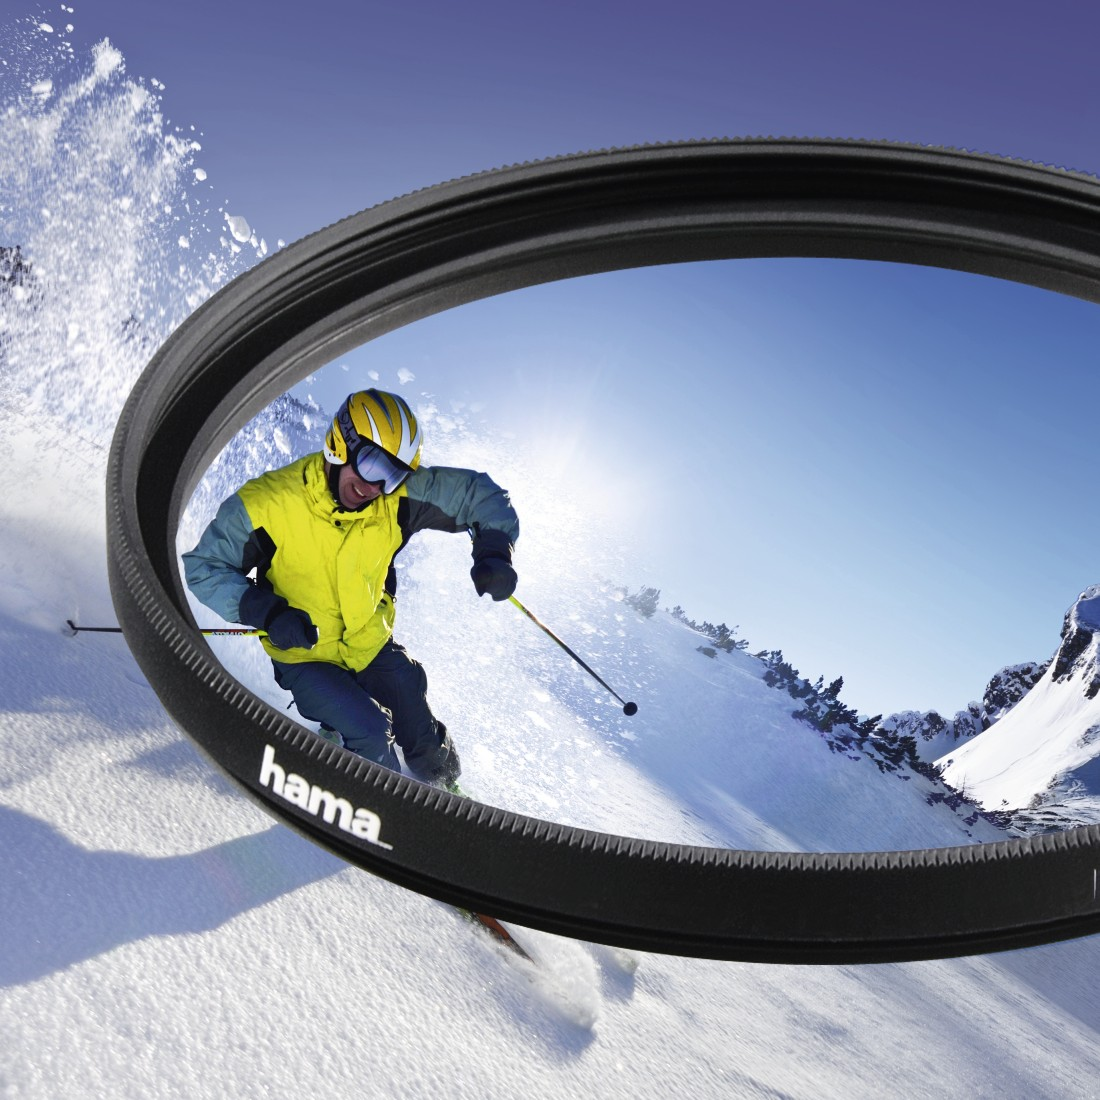 awx2 High-Res Appliance 2 - Hama, UV Filter 390, HTMC multi-coated, 43.0 mm